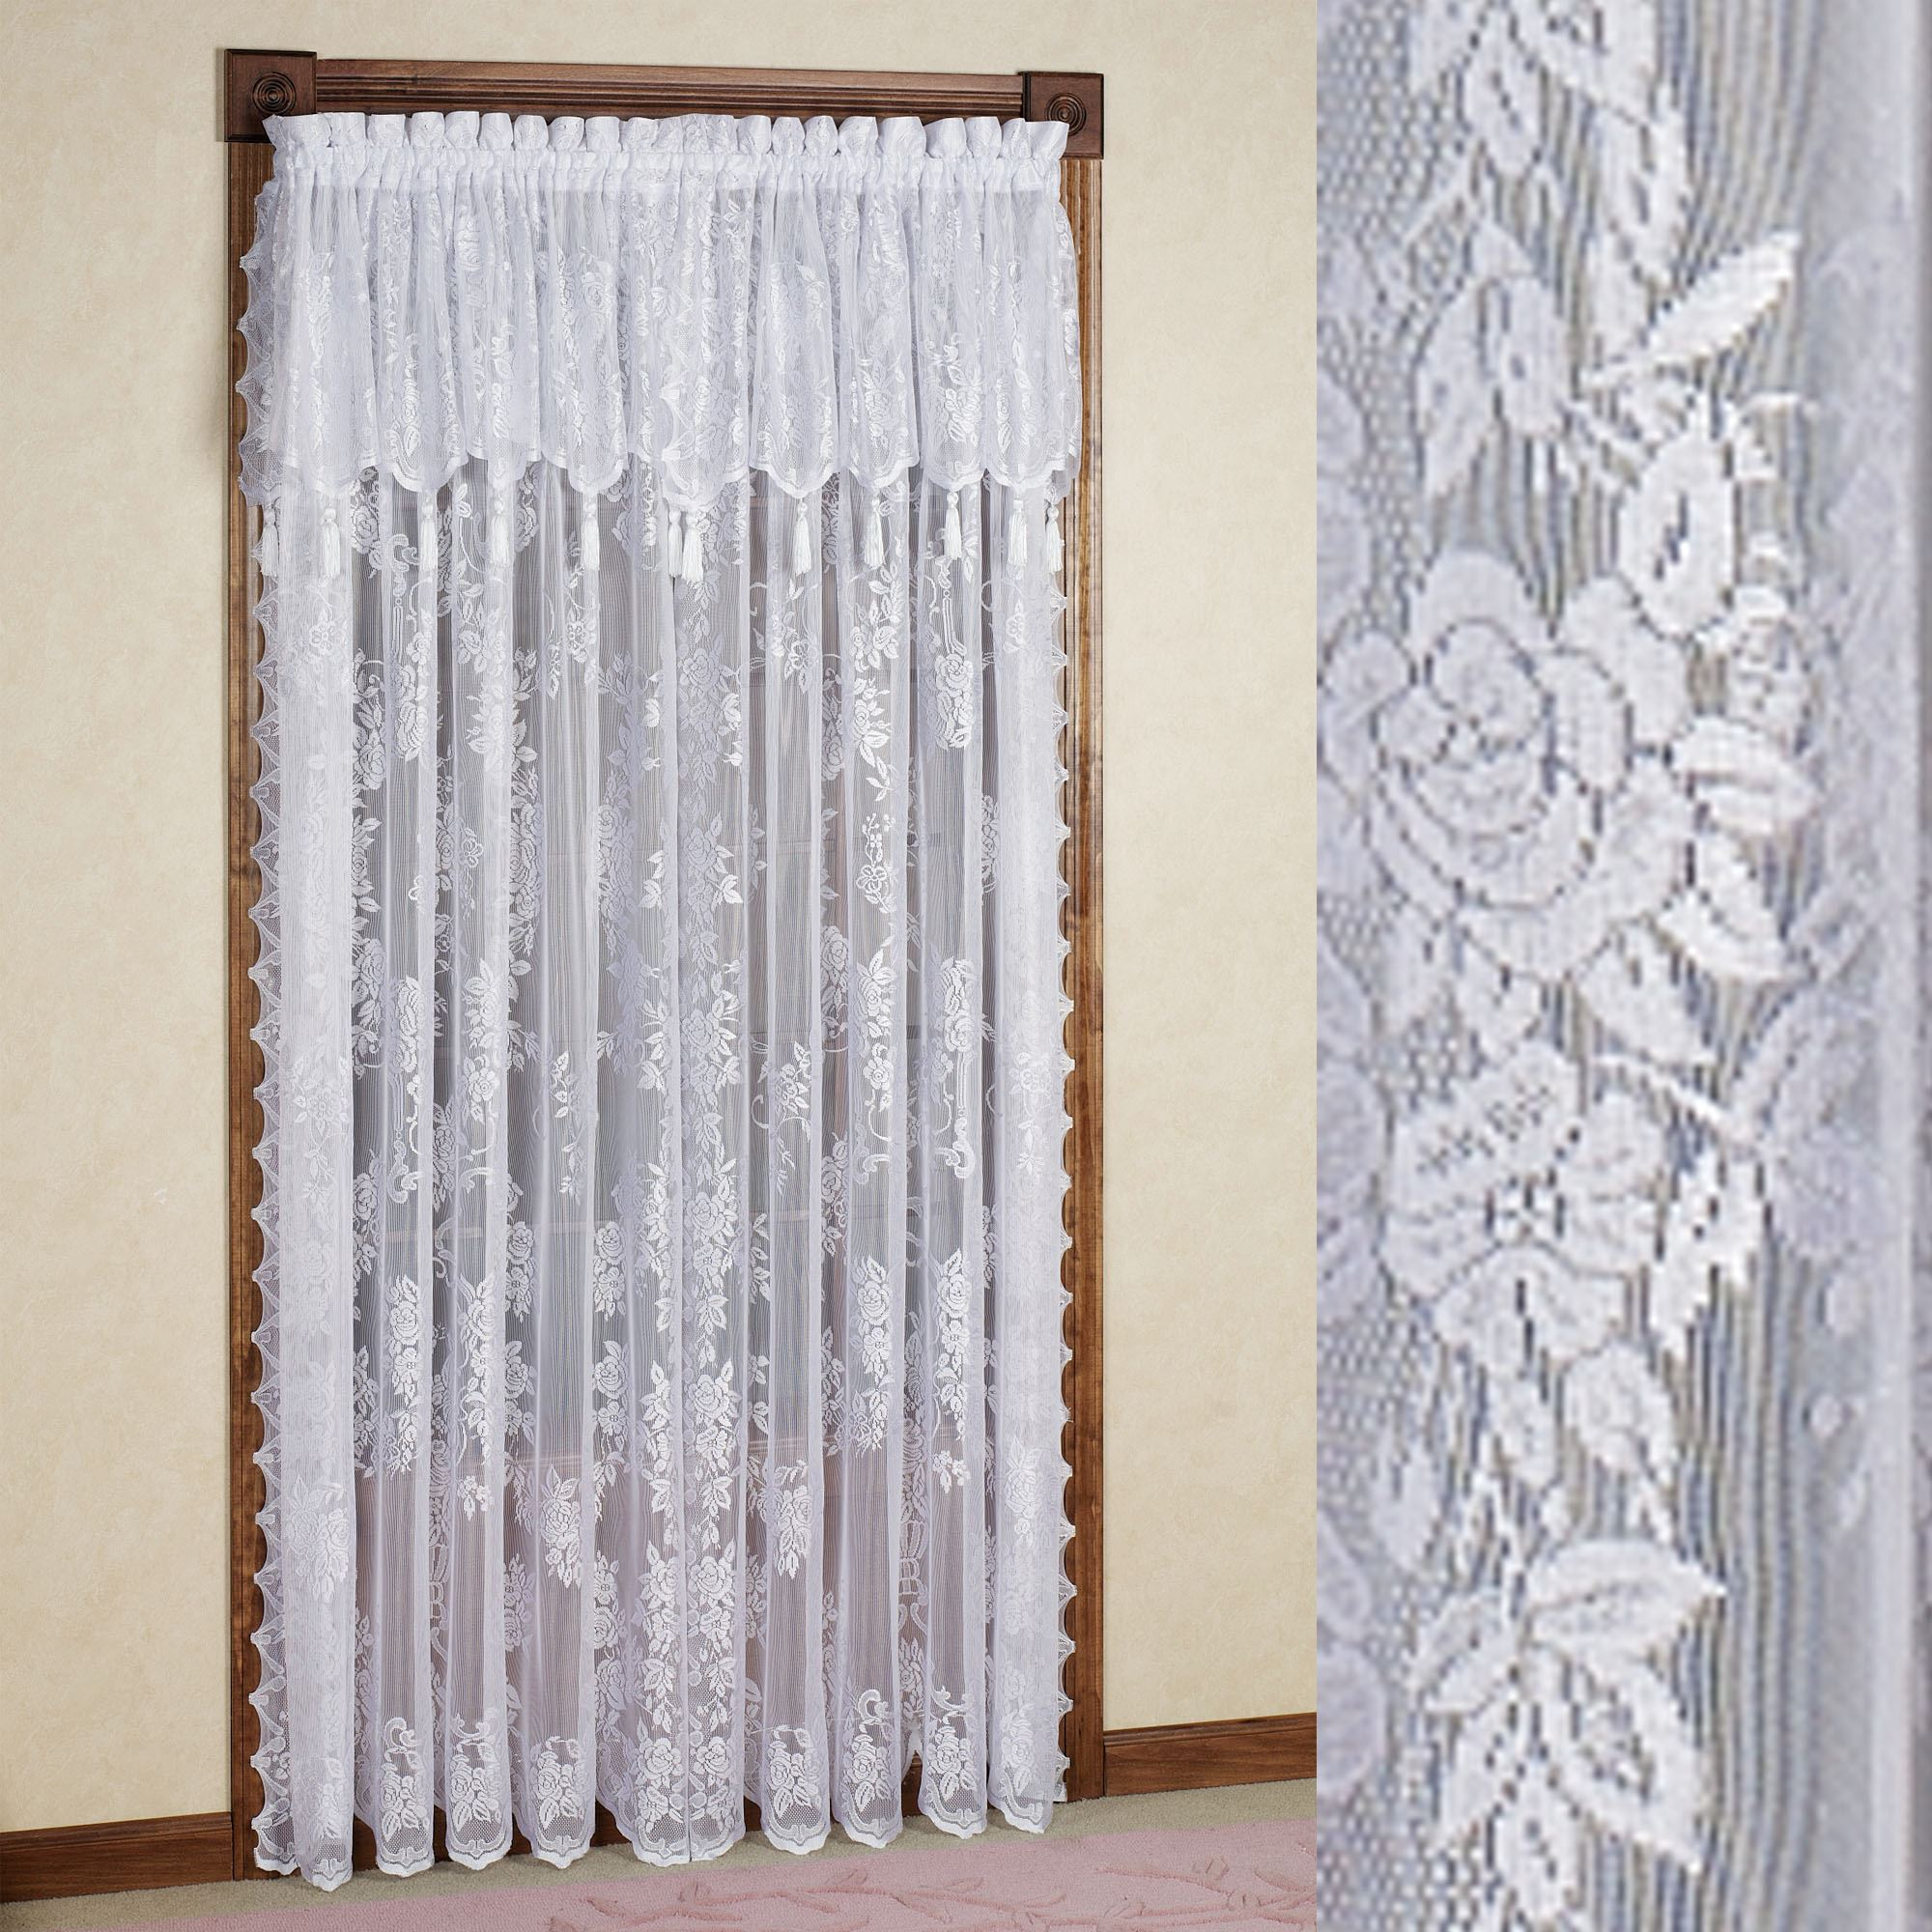 Brilliant Ideas Shower Curtain With Matching Window Valance in proportions 2000 X 2000